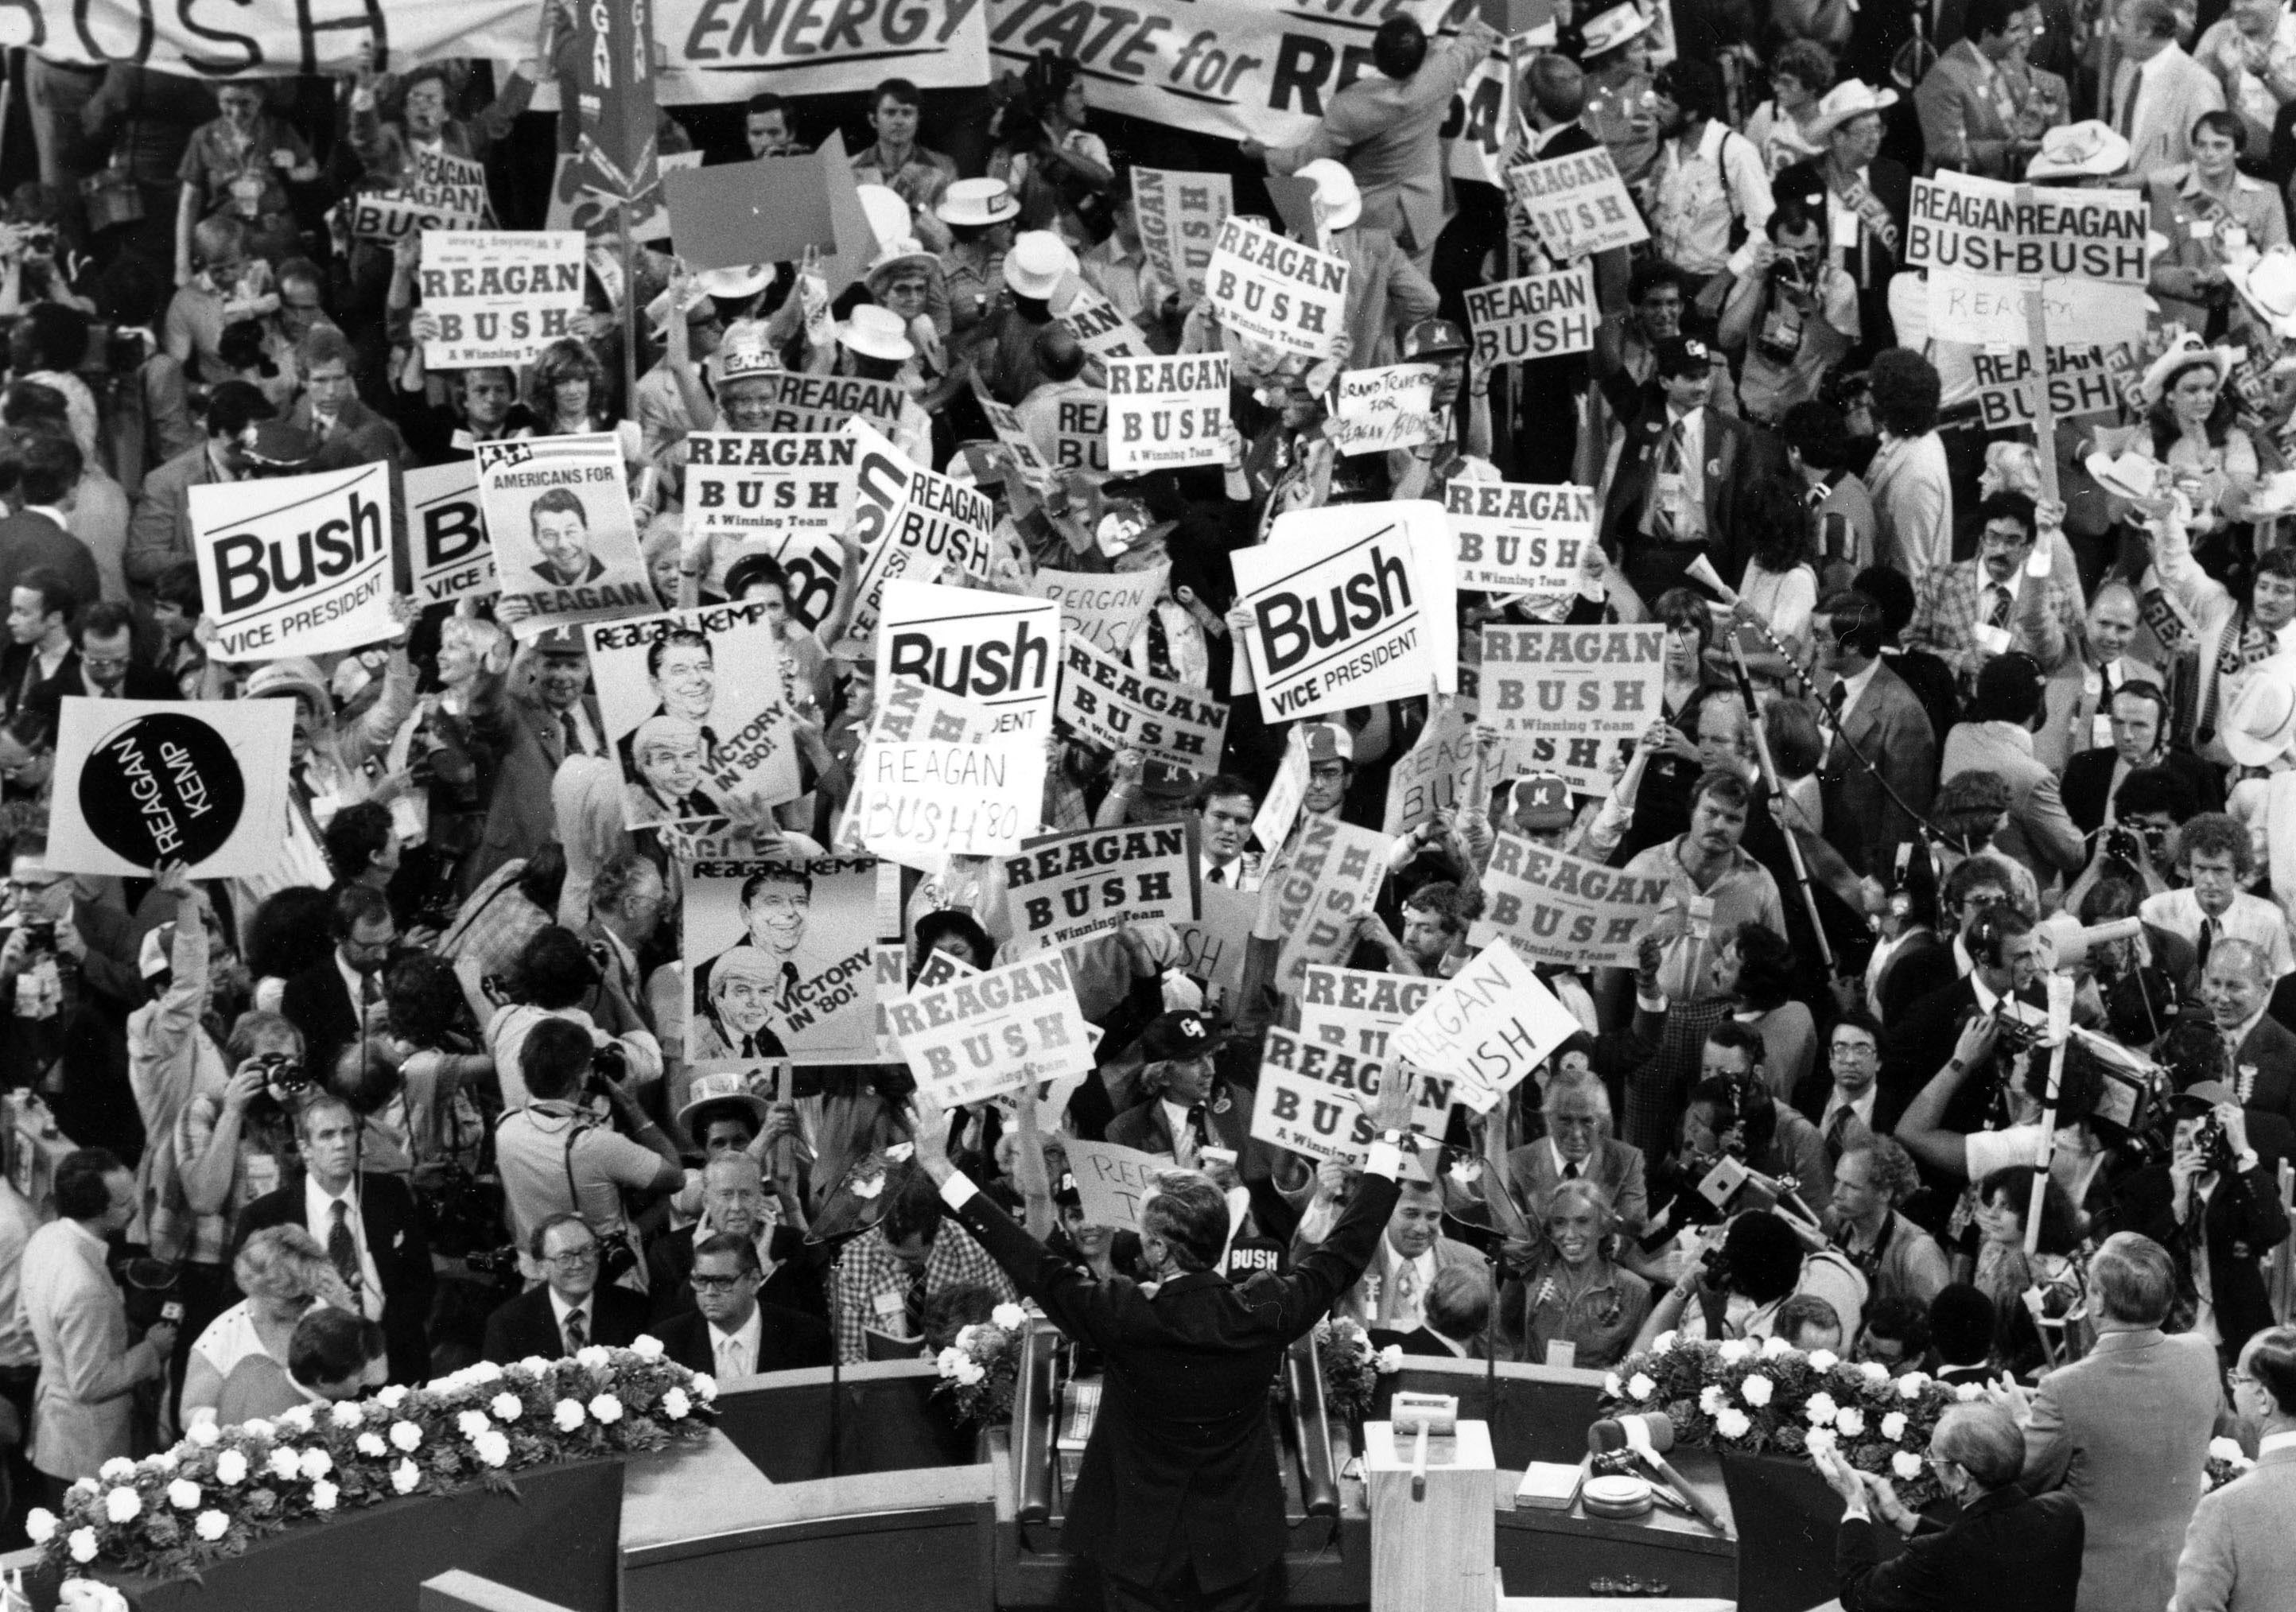 In this July 16, 1980 photo George H.W. Bush, center foreground, acknowledges the crowd before speaking to the Republican Convention delegates in Detroit, MI. (AP Photo/File)